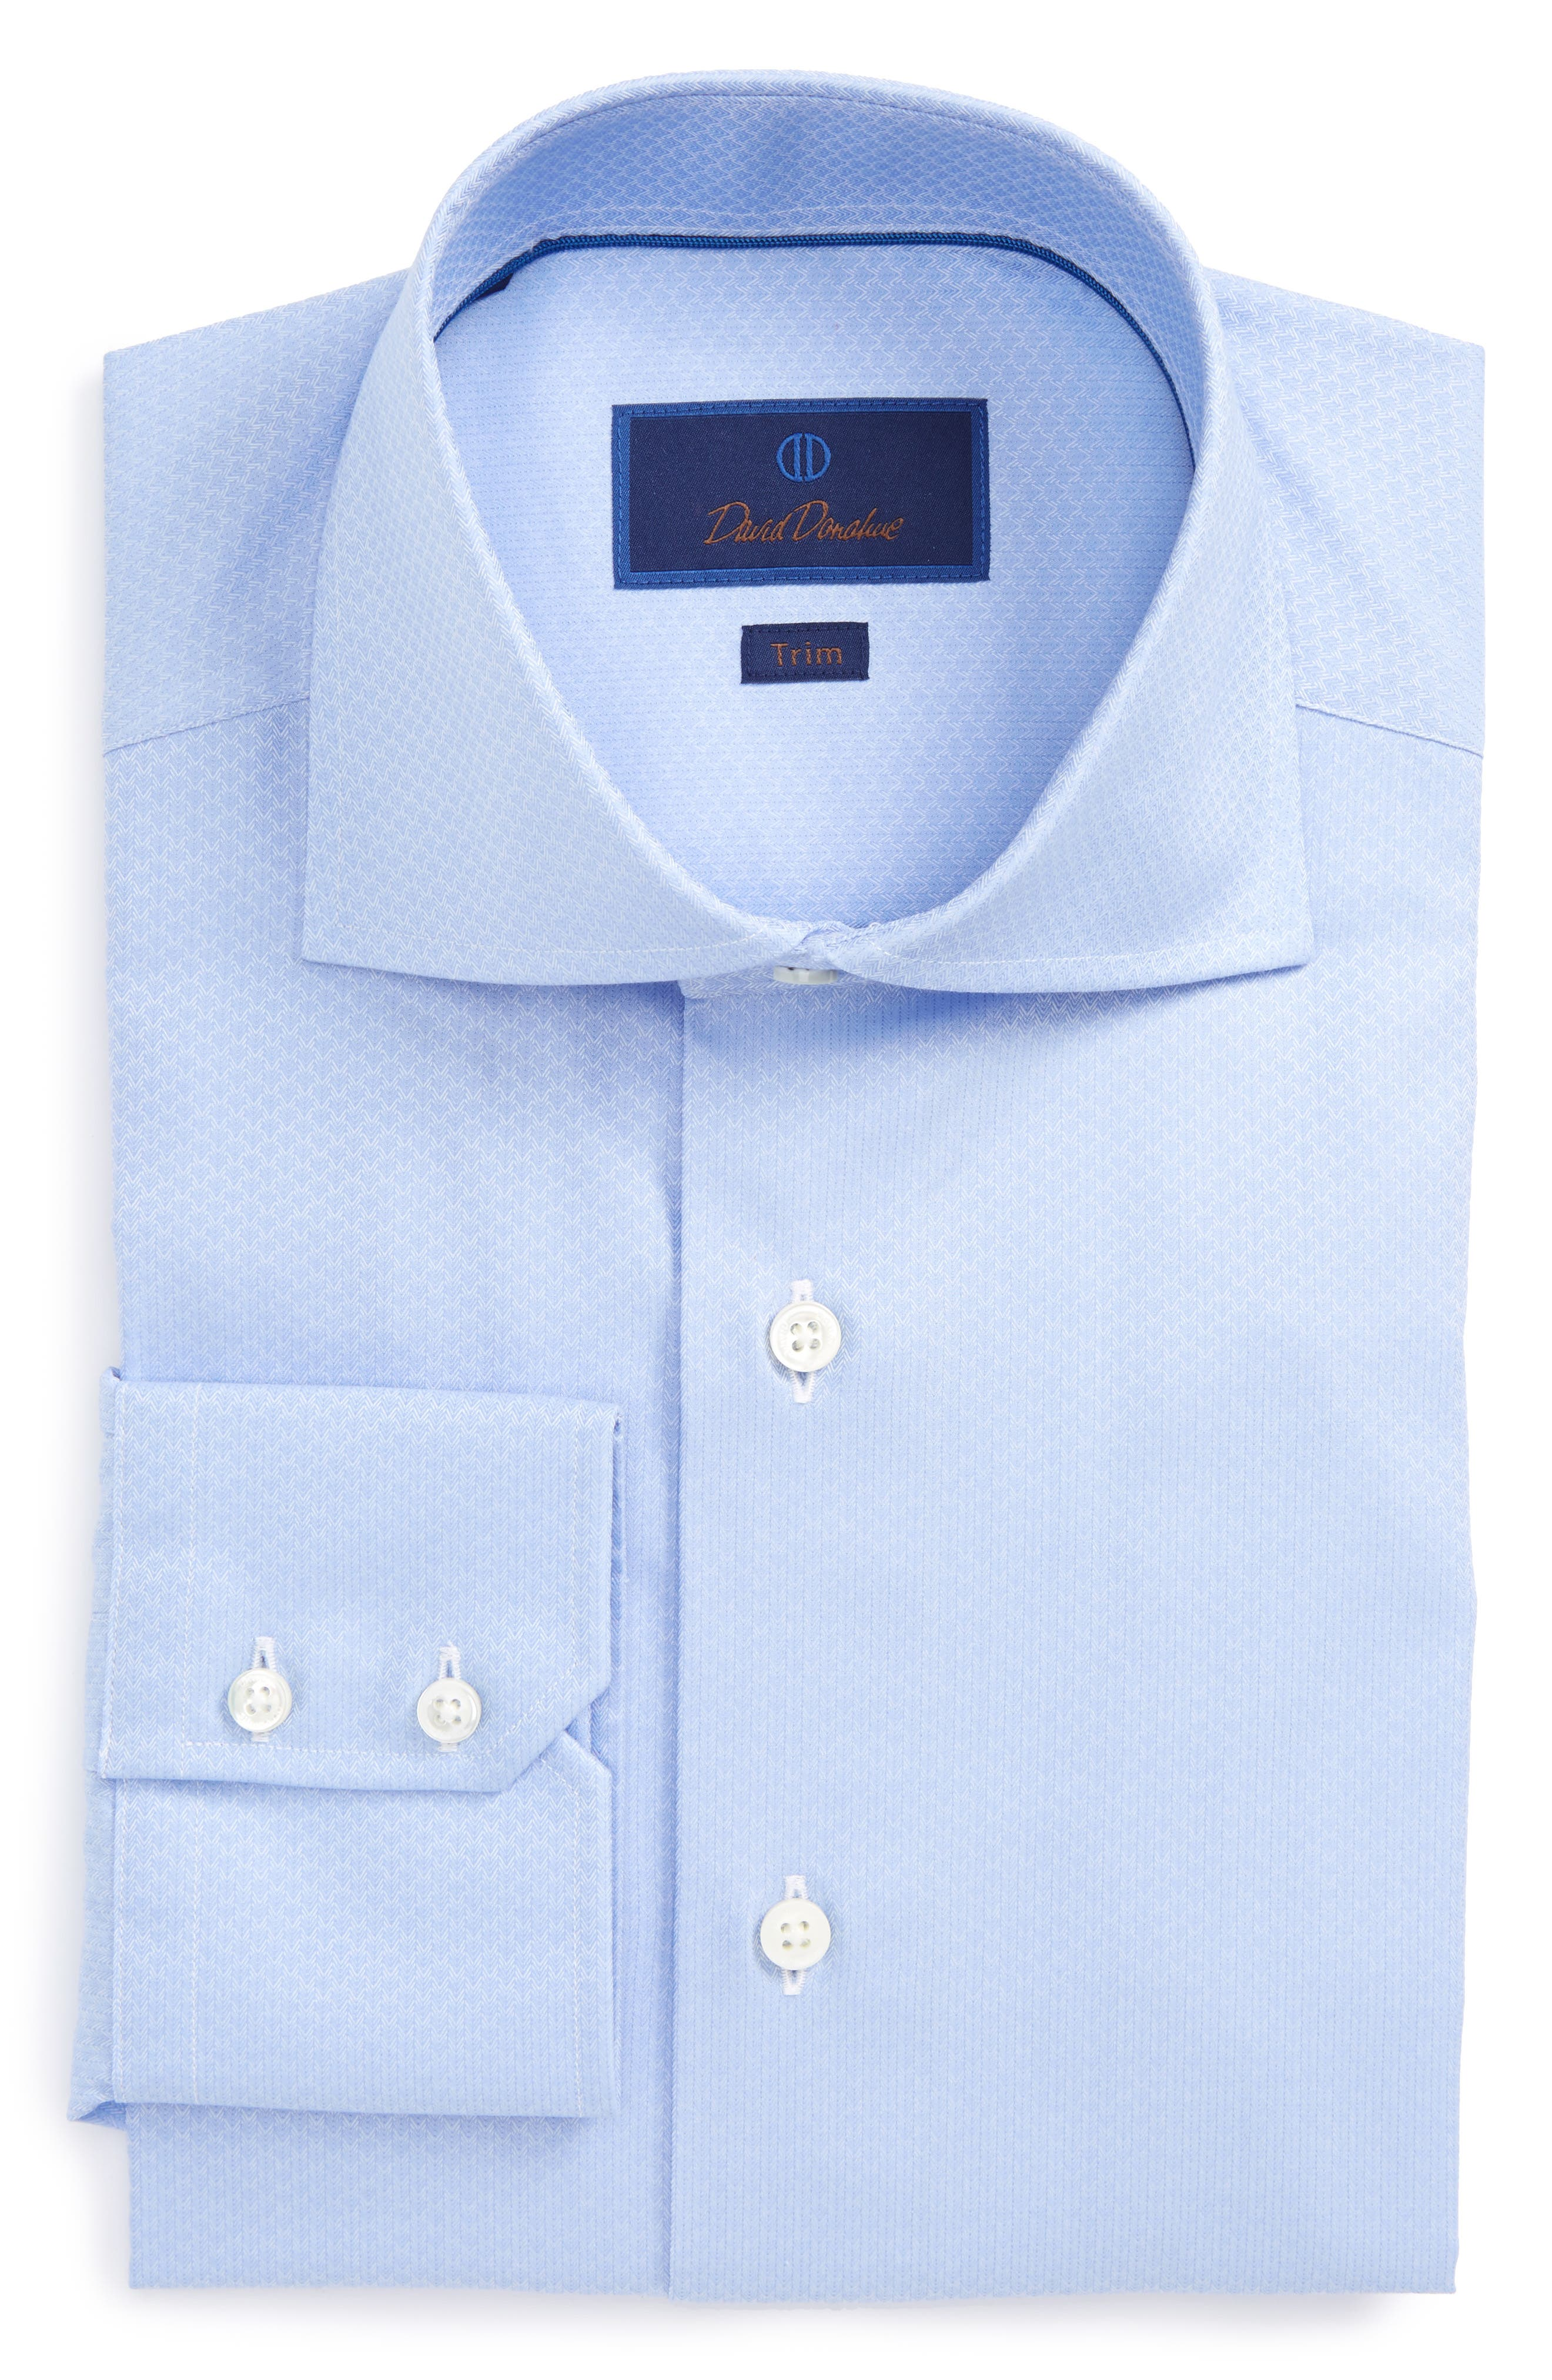 Main Image - David Donahue Trim Fit Herringbone Weave Dress Shirt